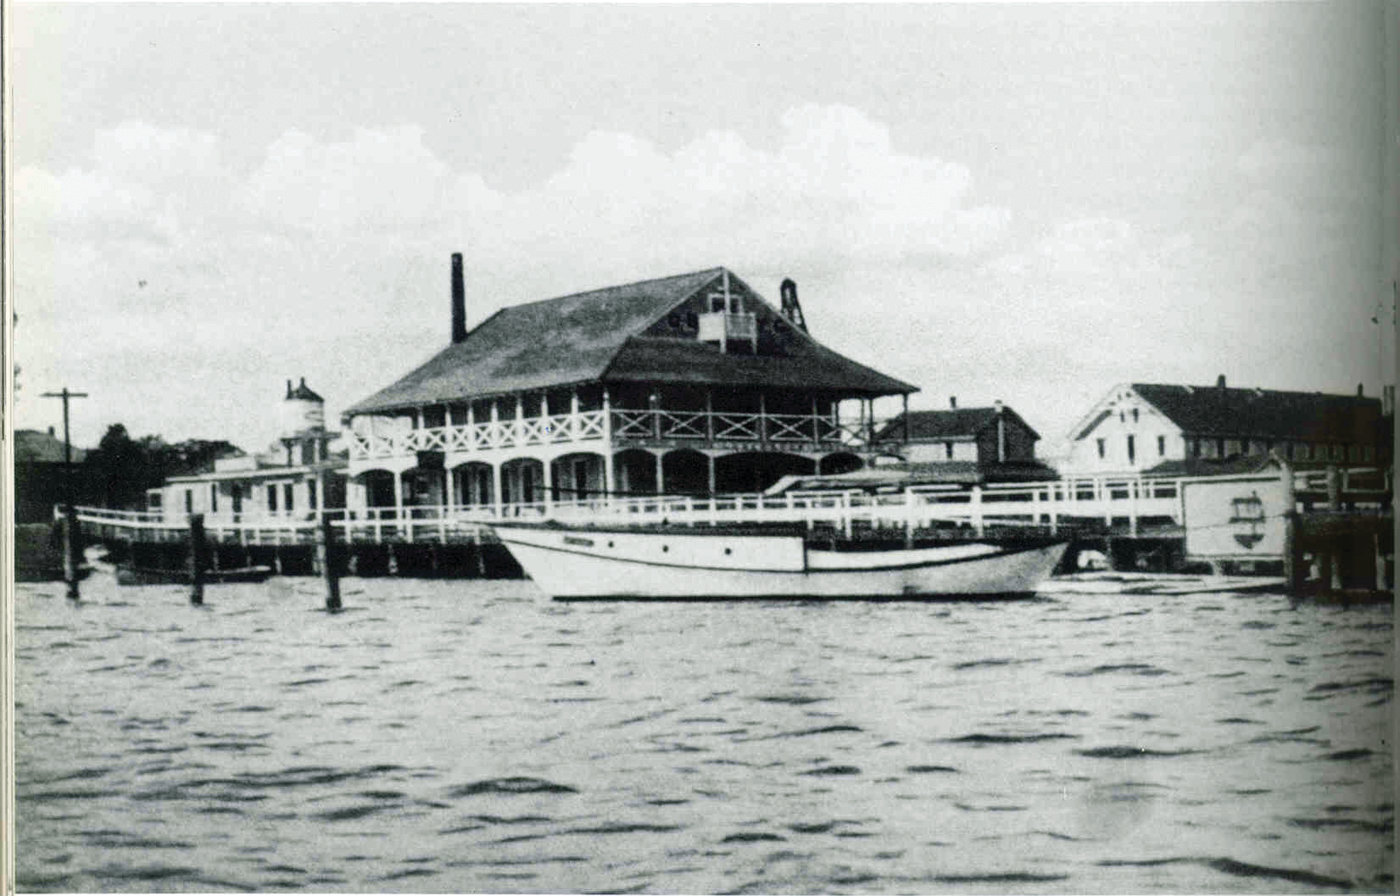 A SURVIVOR: While the Oakland Beach Yacht Club, at left, didn't make it through the Great 1938 Hurricane, the then hotel and now home to Cozy Caterers survived.